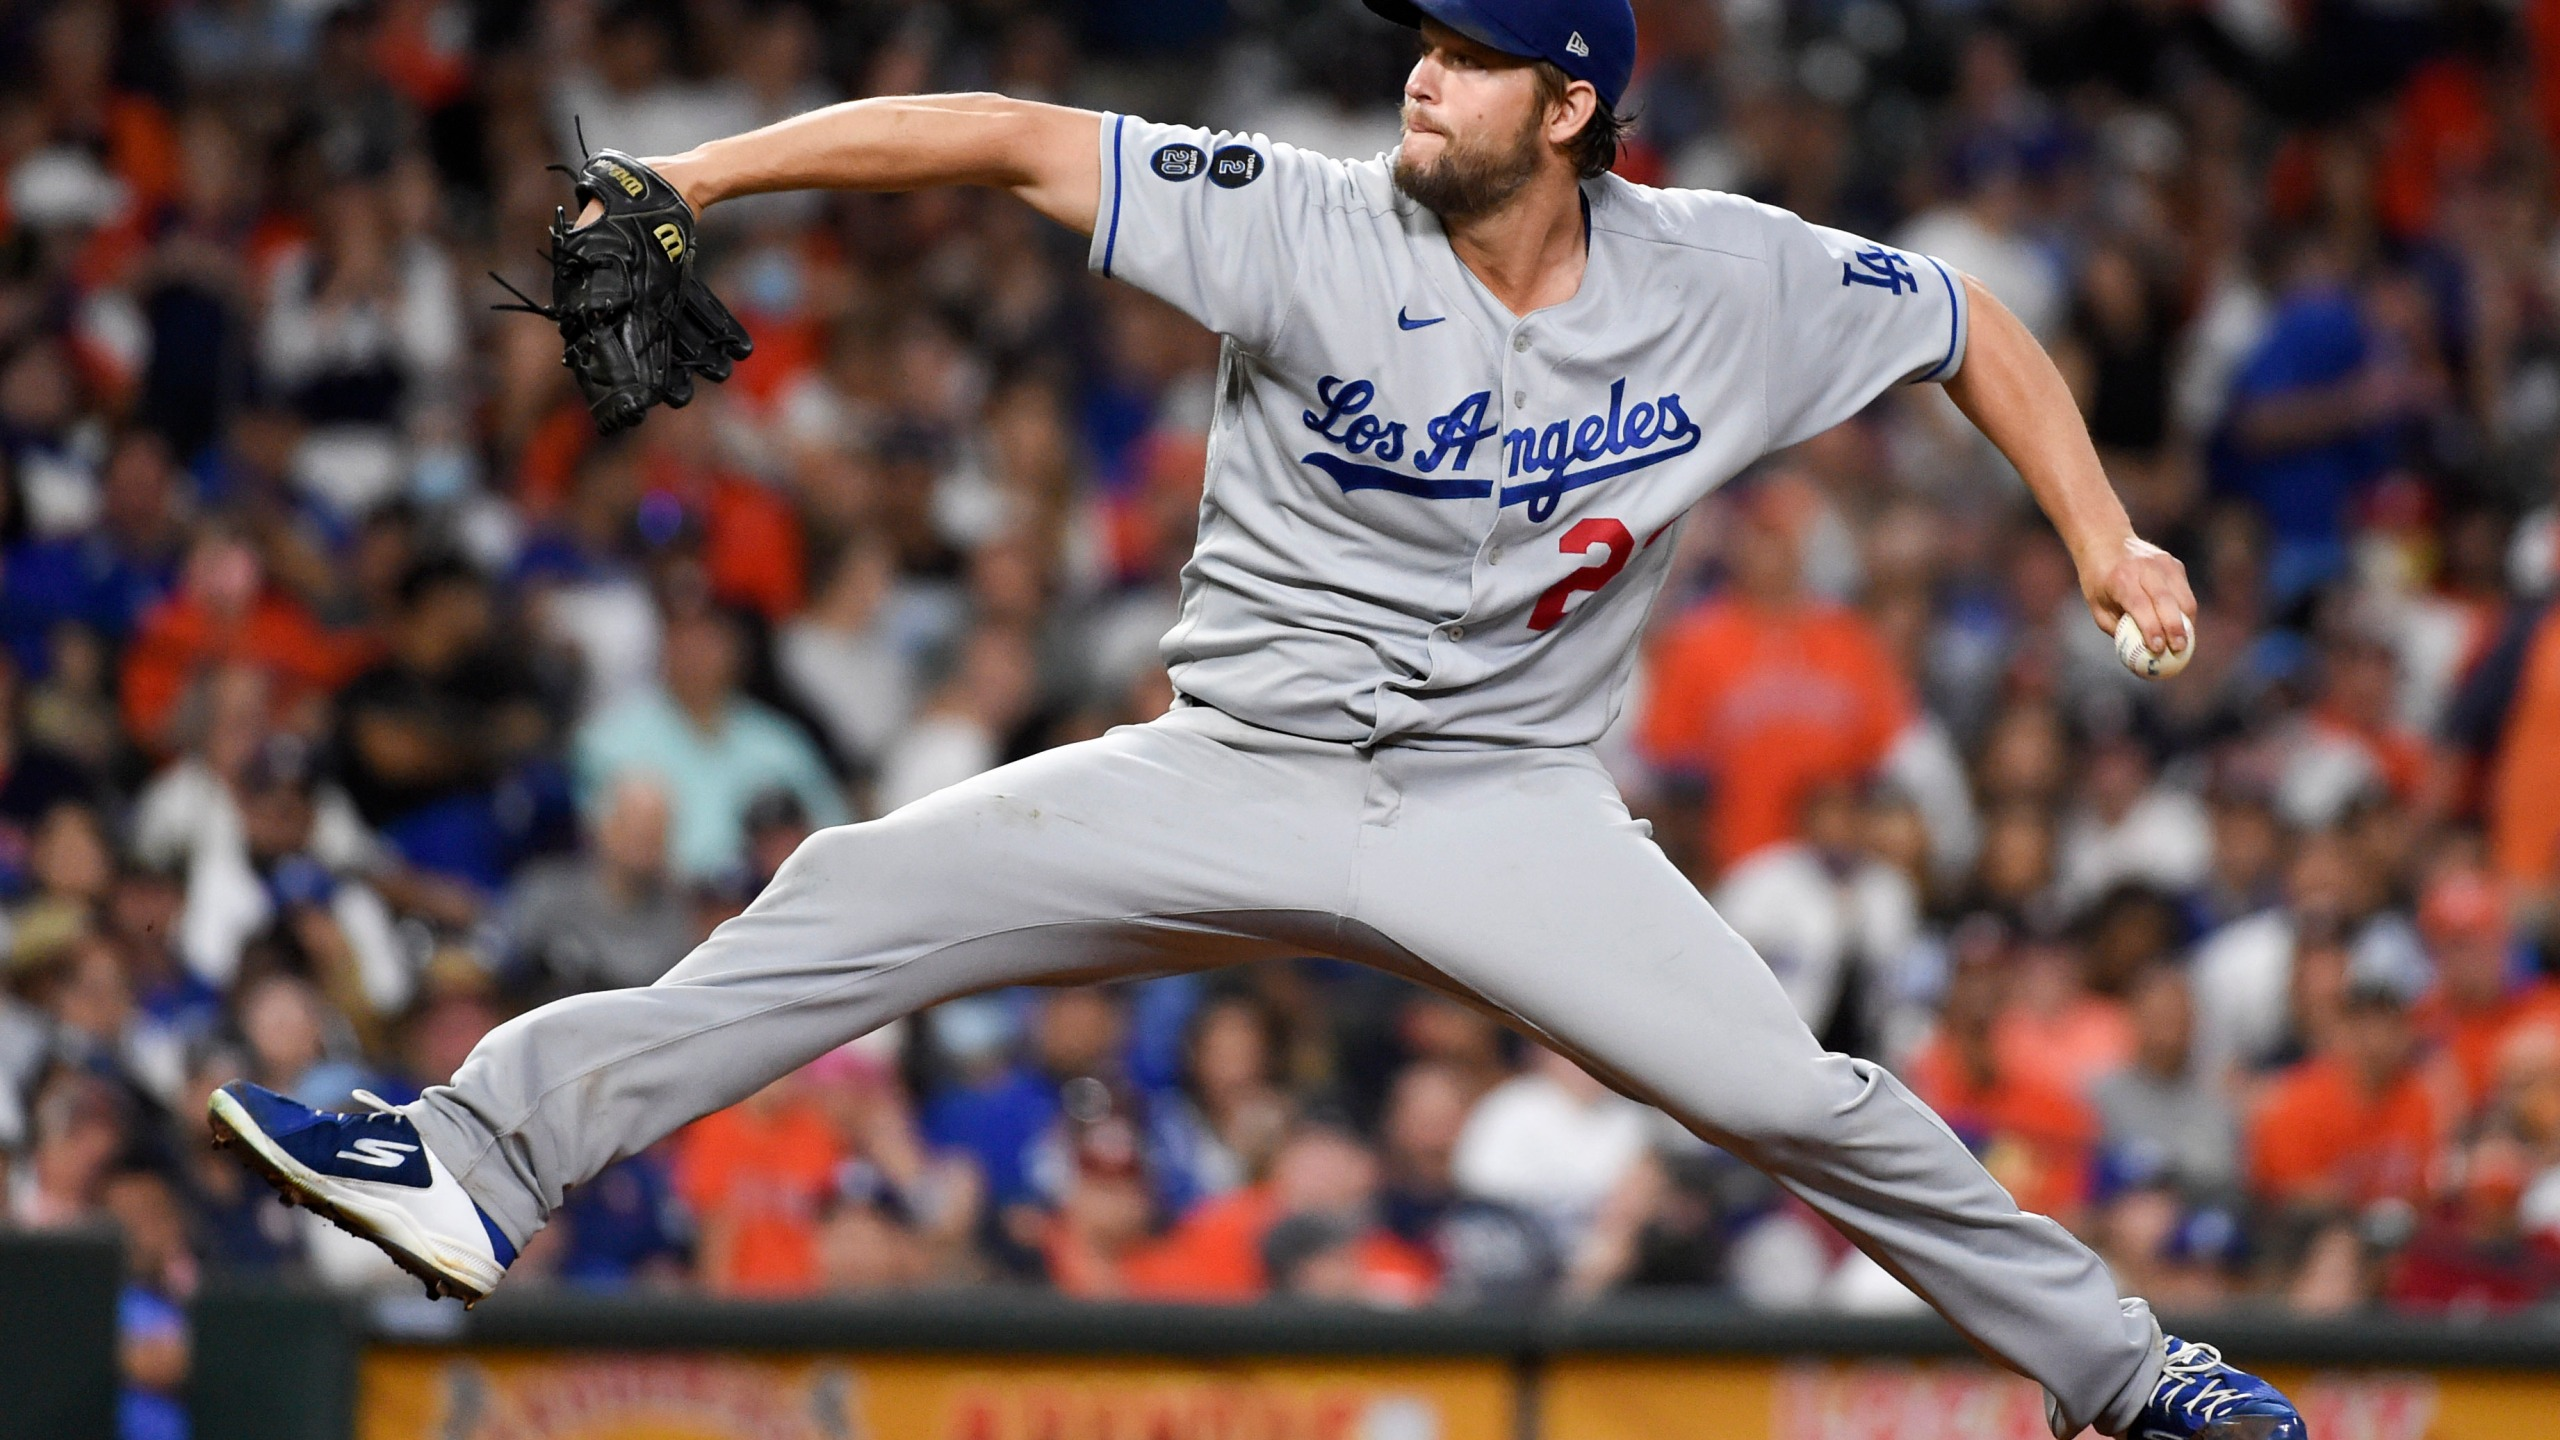 os Angeles Dodgers starting pitcher Clayton Kershaw delivers during the sixth inning of a baseball game against the Houston Astros on May 25, 2021, in Houston. (AP Photo/Eric Christian Smith)